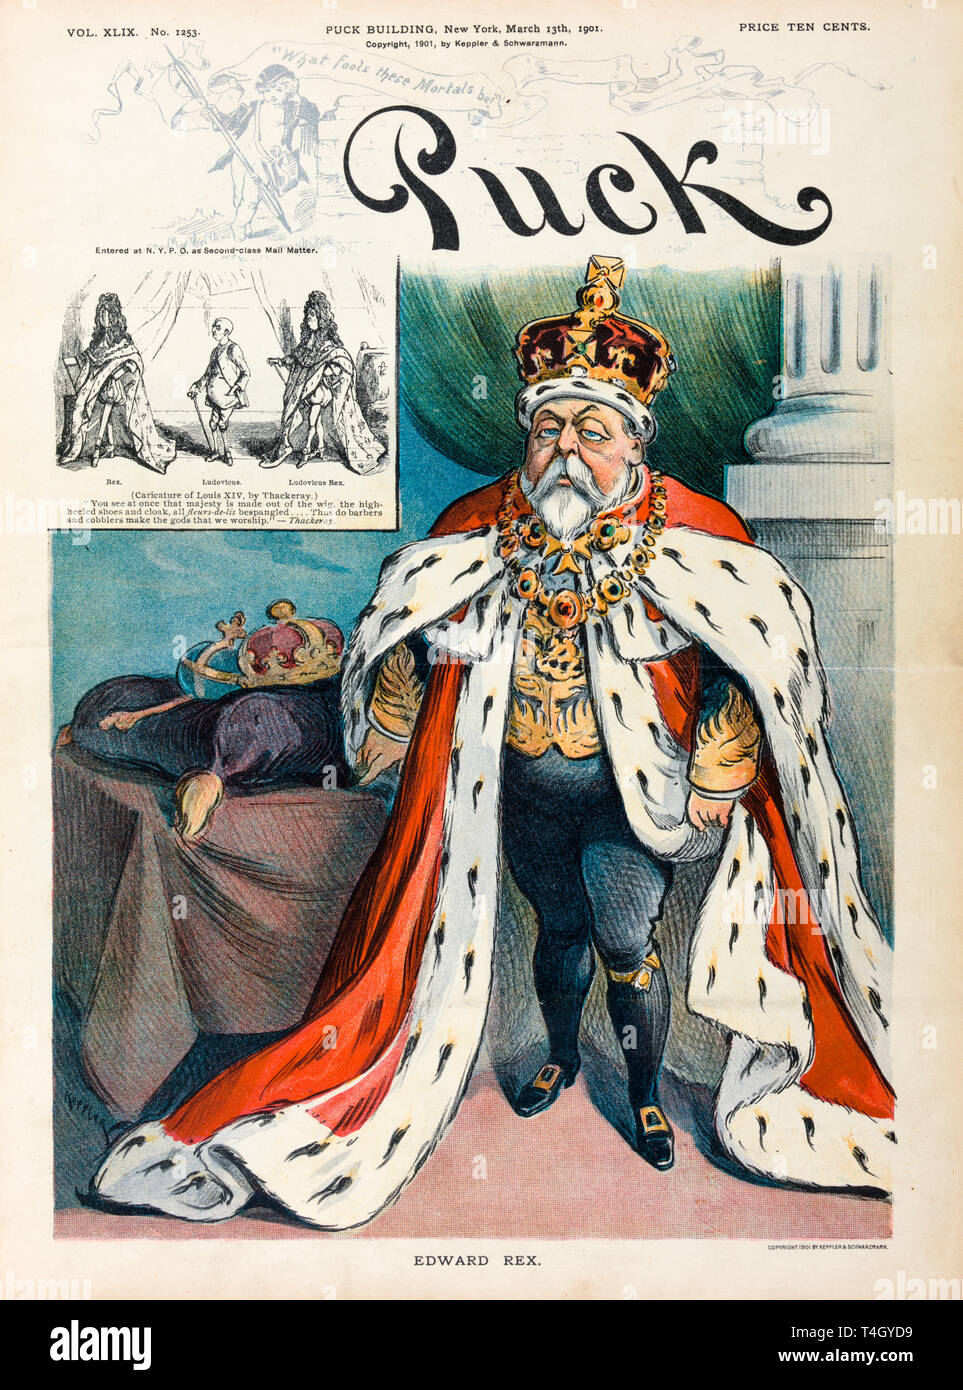 Kind Edward VII, caricature, Puck Magazine cover, March 1901 - Stock Image